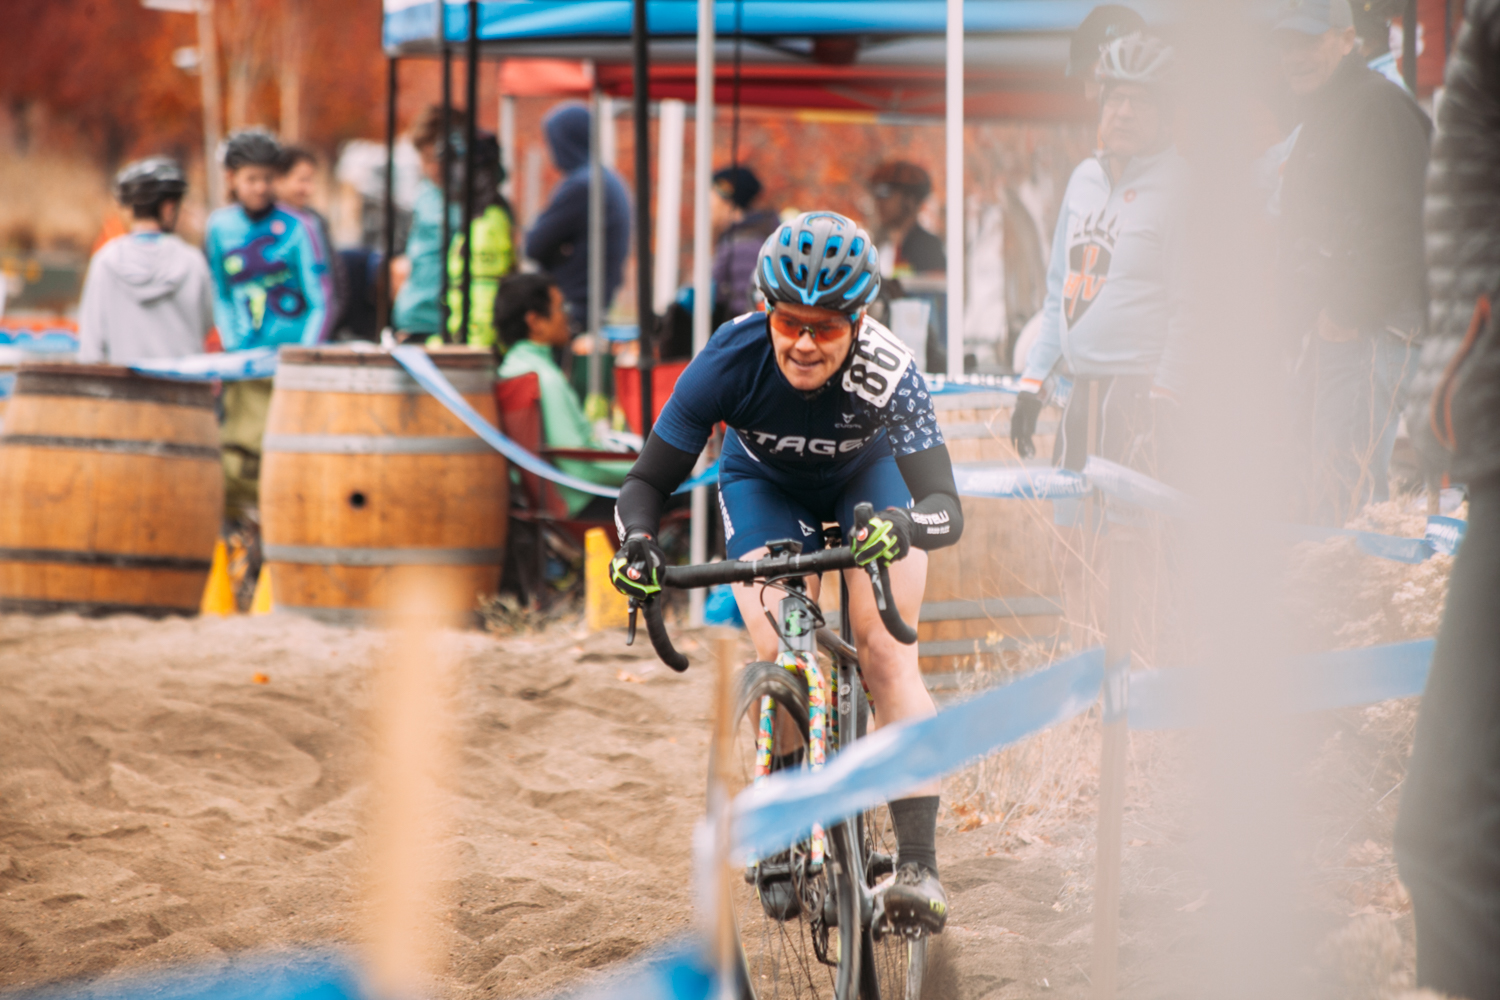 Cyclocross18_CCCX-Bend-Day1-22-fransencomesalive-2.jpg